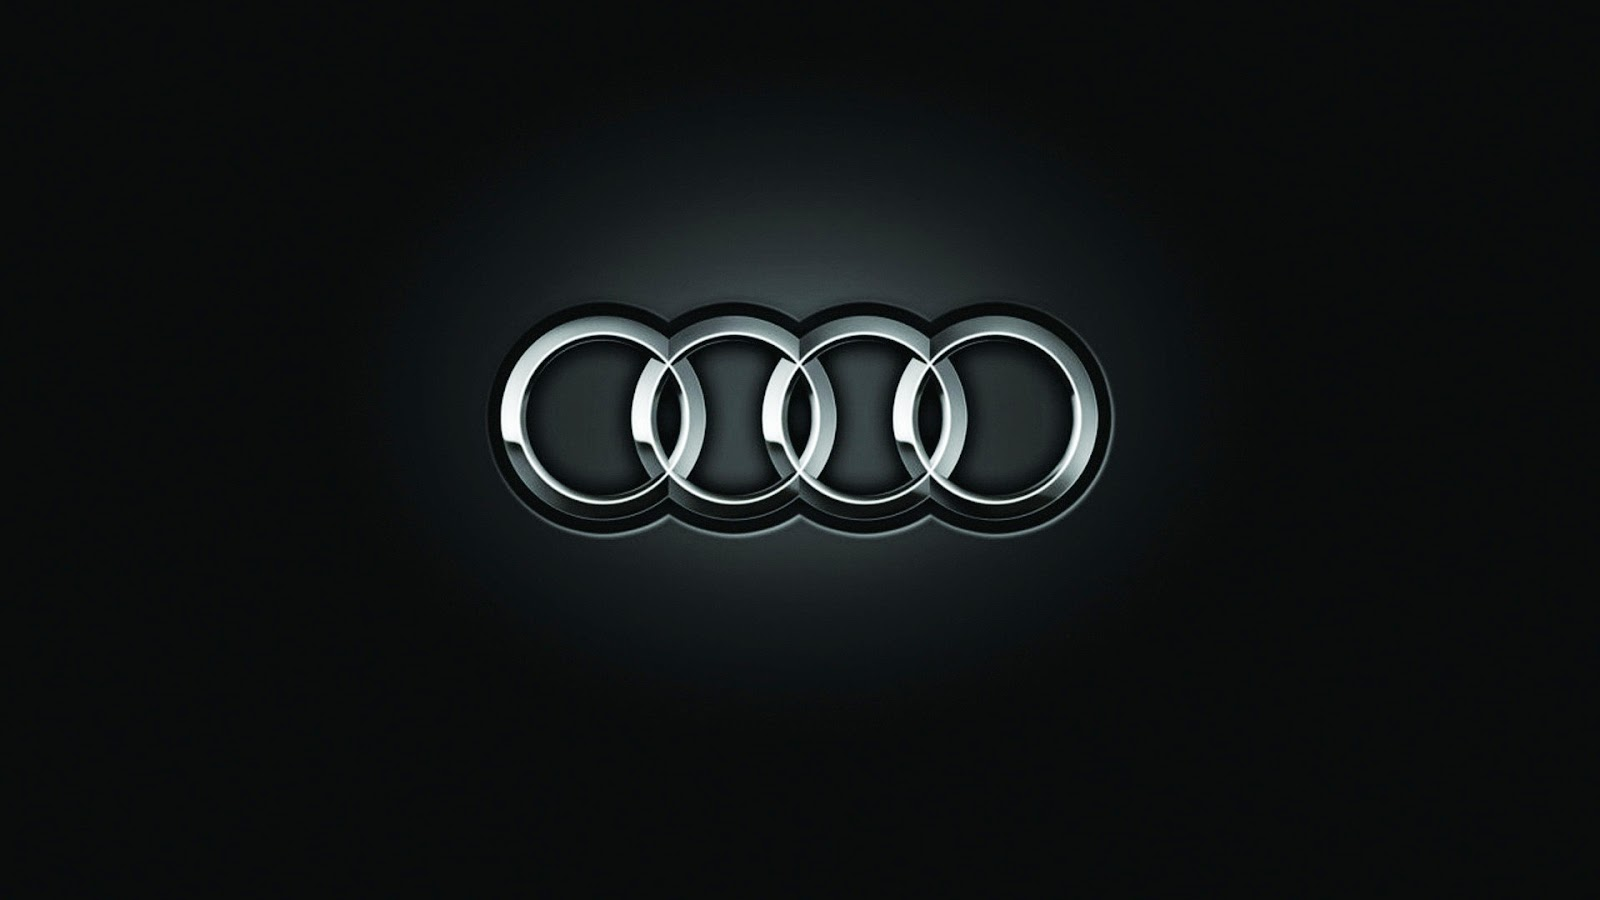 Audi Car Logo HD Wallpaper